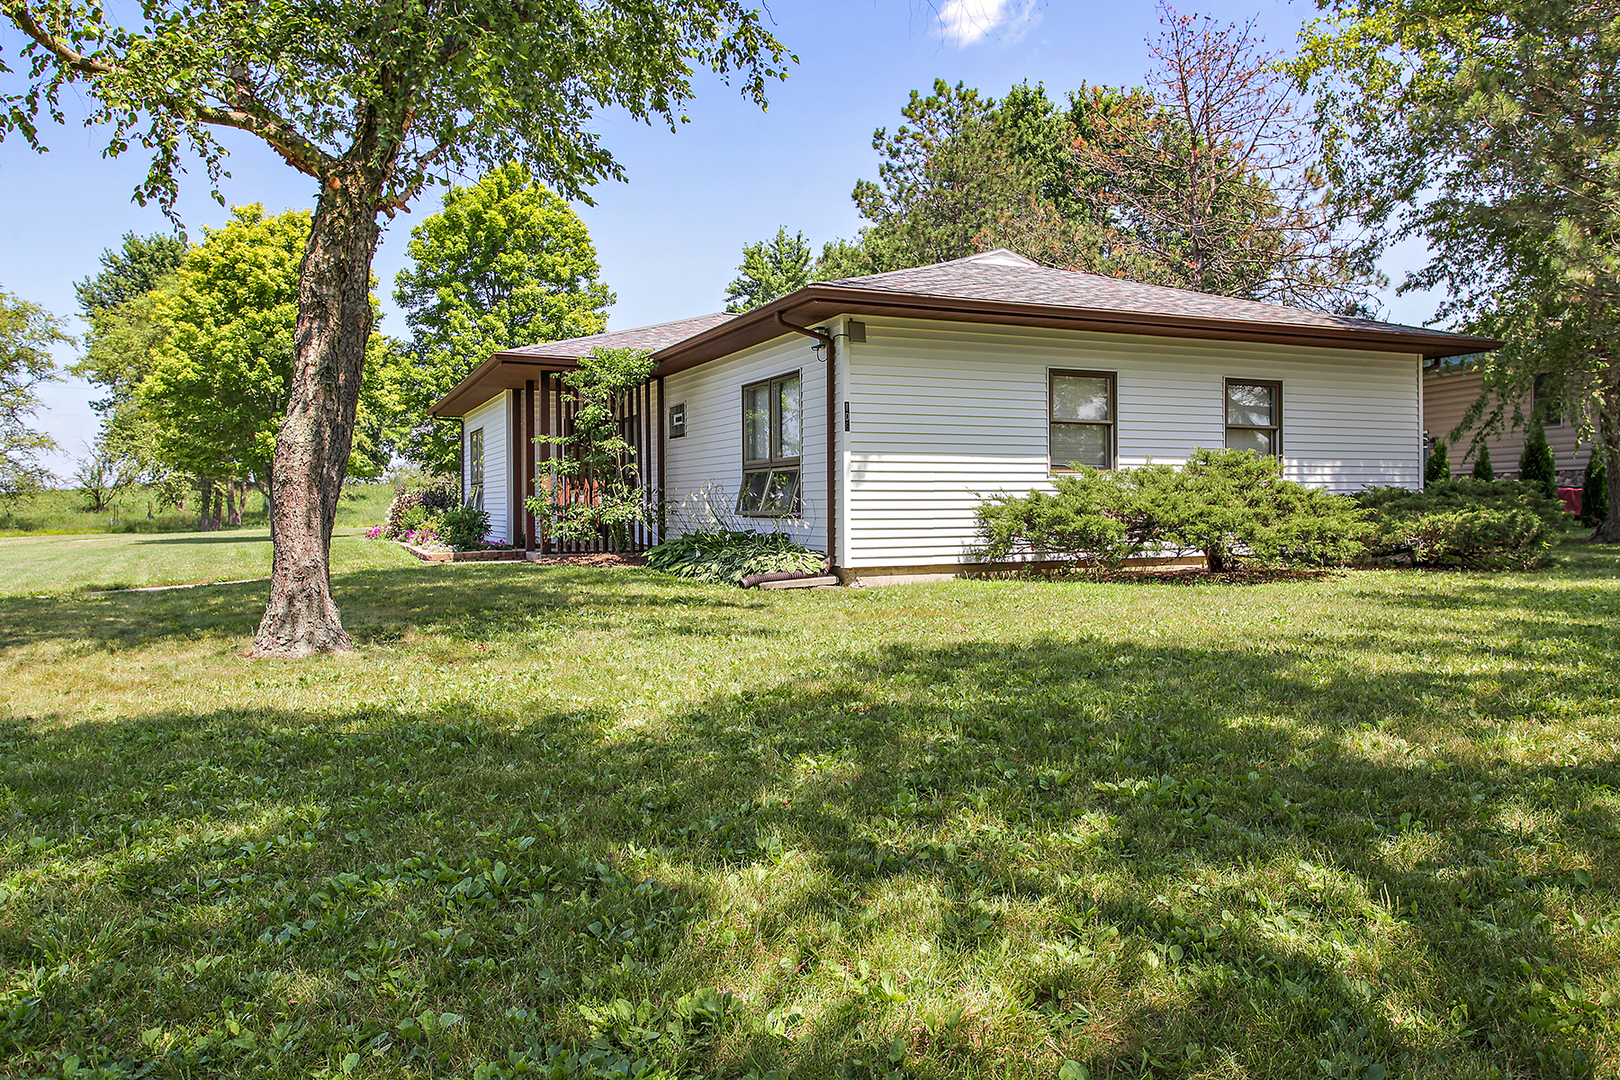 106 Sun, Cabery, Illinois, 60919